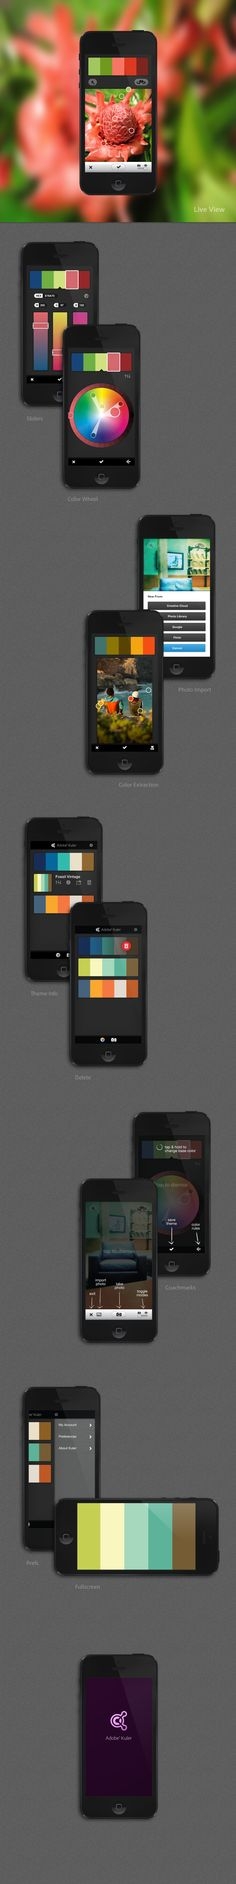 Adobe Kuler (iPhone app concept) by Gabriel Campbell, via Behance *** #iphone #app #gui #adobe